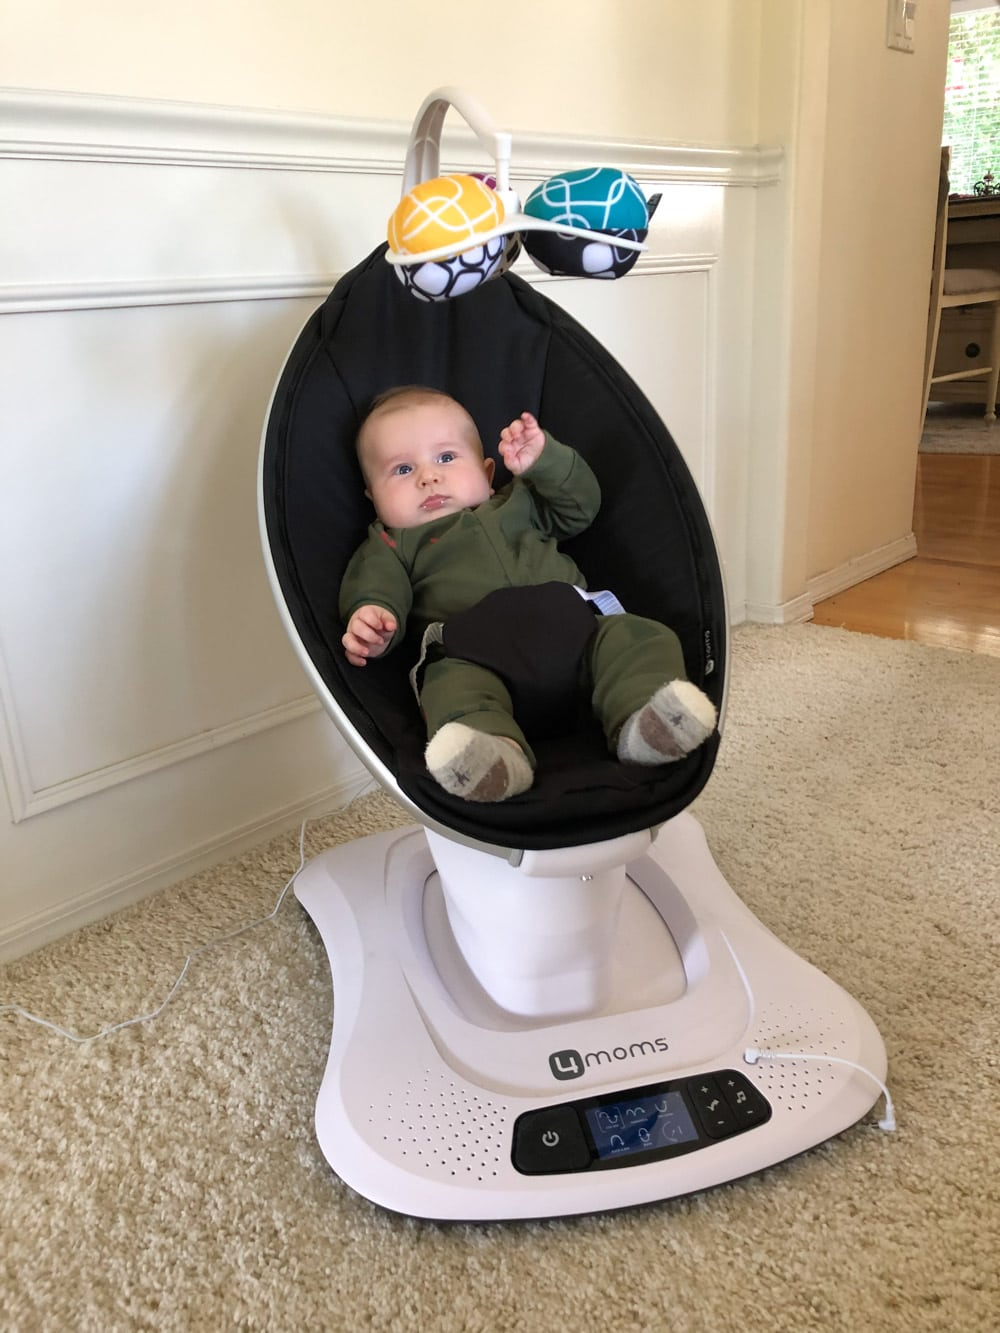 Sawyer in his bouncer chair.